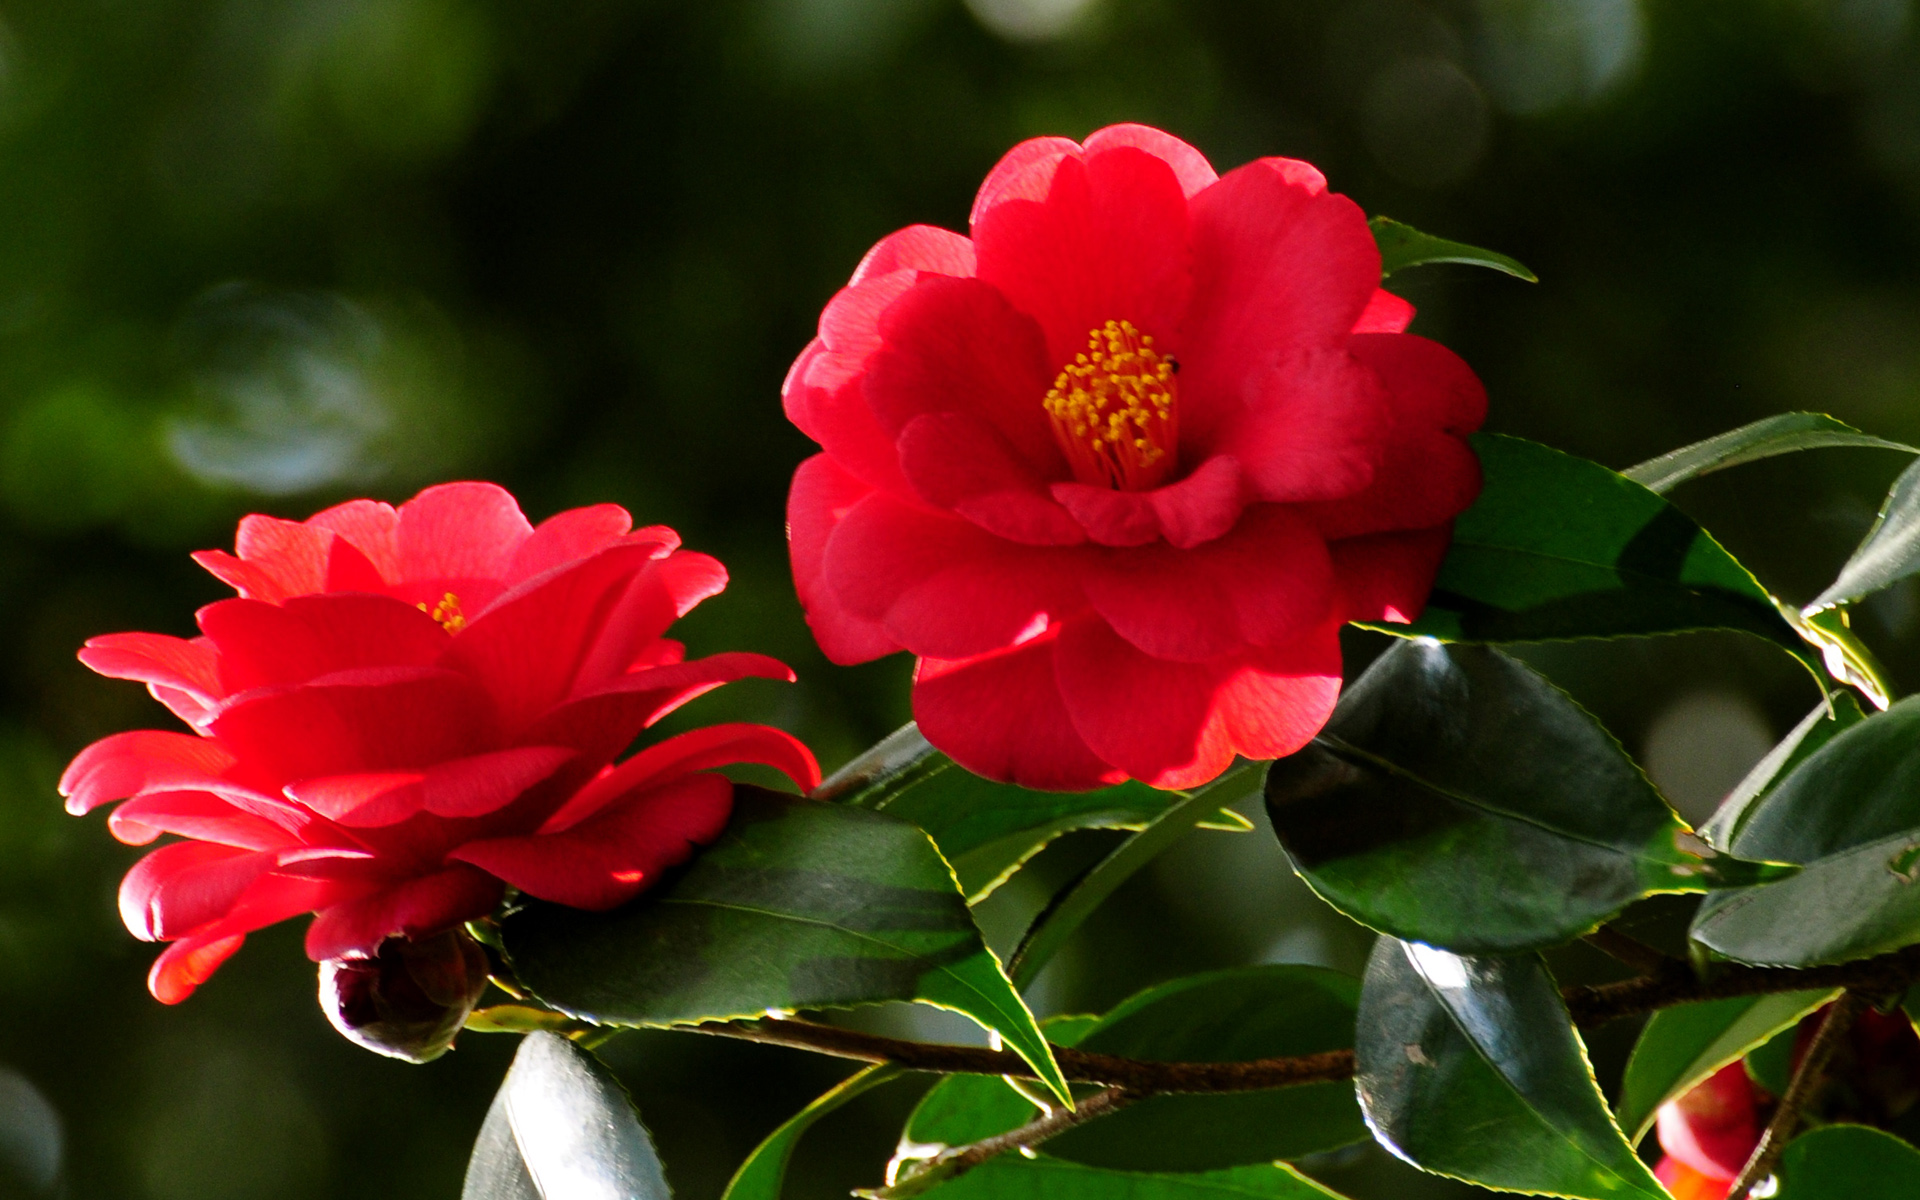 Red Flowers Large Hd Wallpaper Database